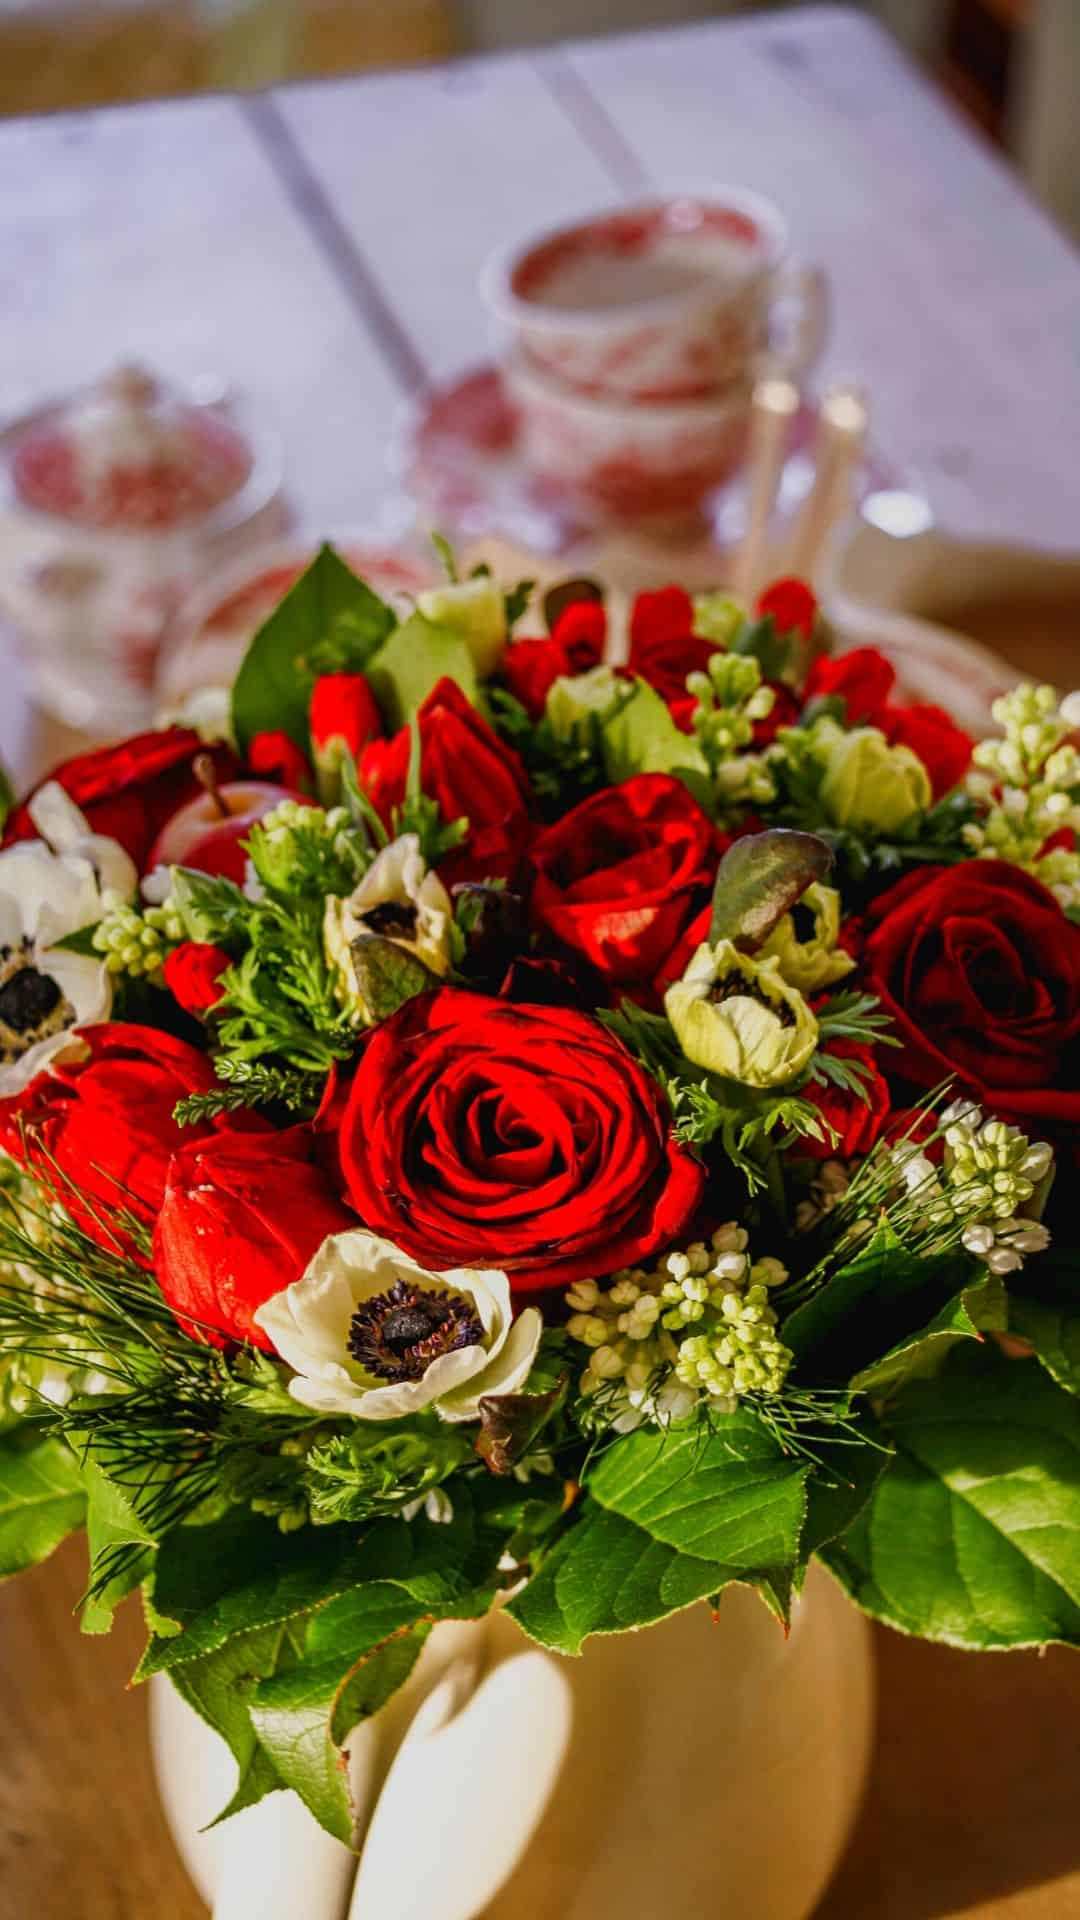 Christmas Wallpapers For iPhone Holiday Roses